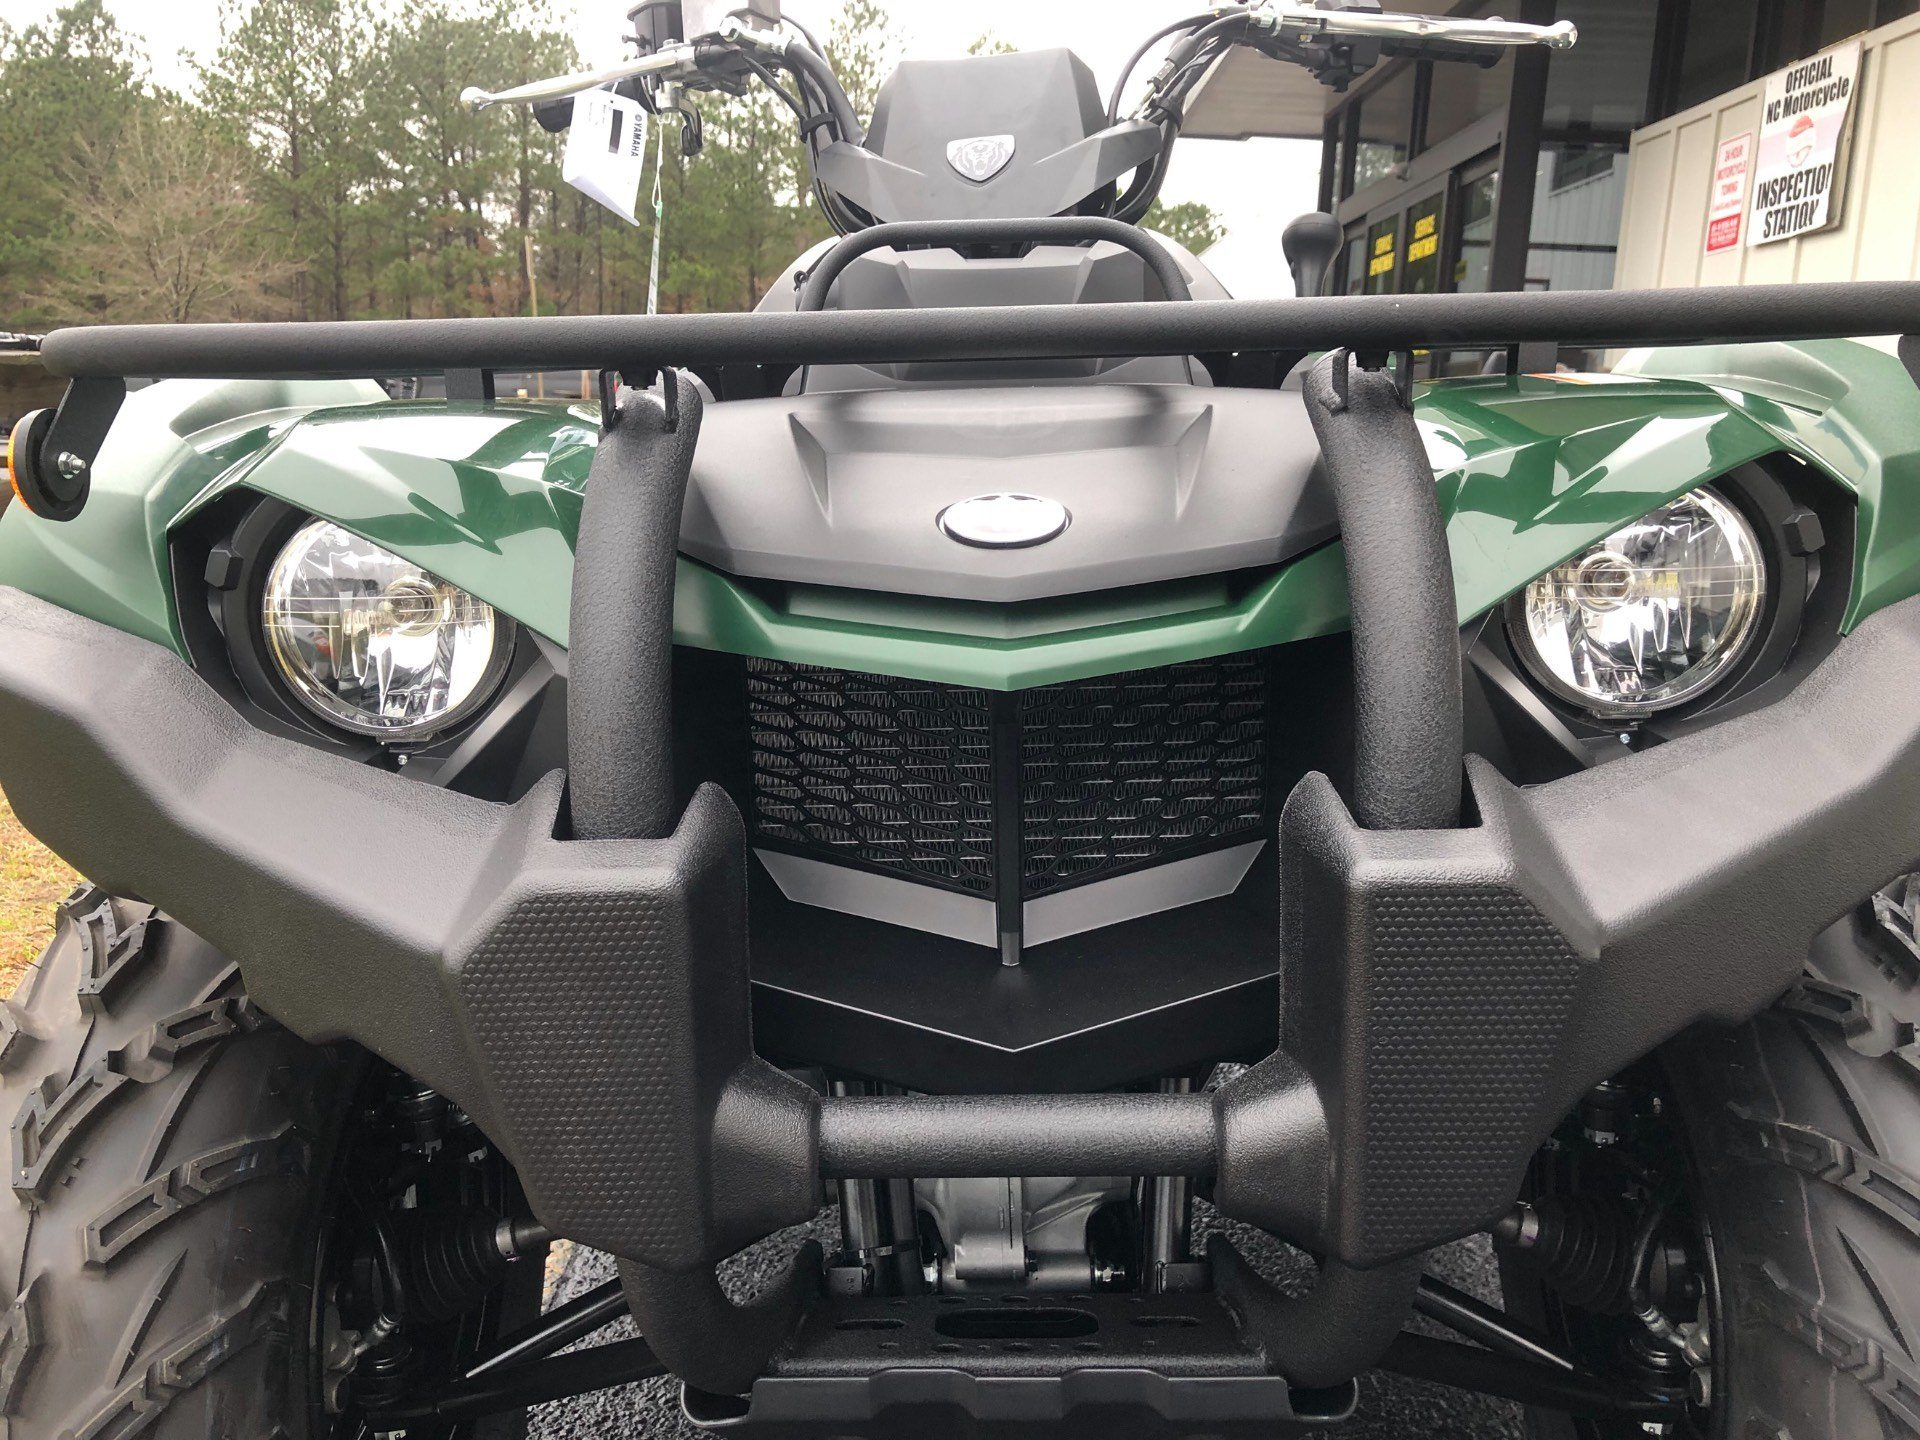 2019 Yamaha Kodiak 450 in Greenville, North Carolina - Photo 16